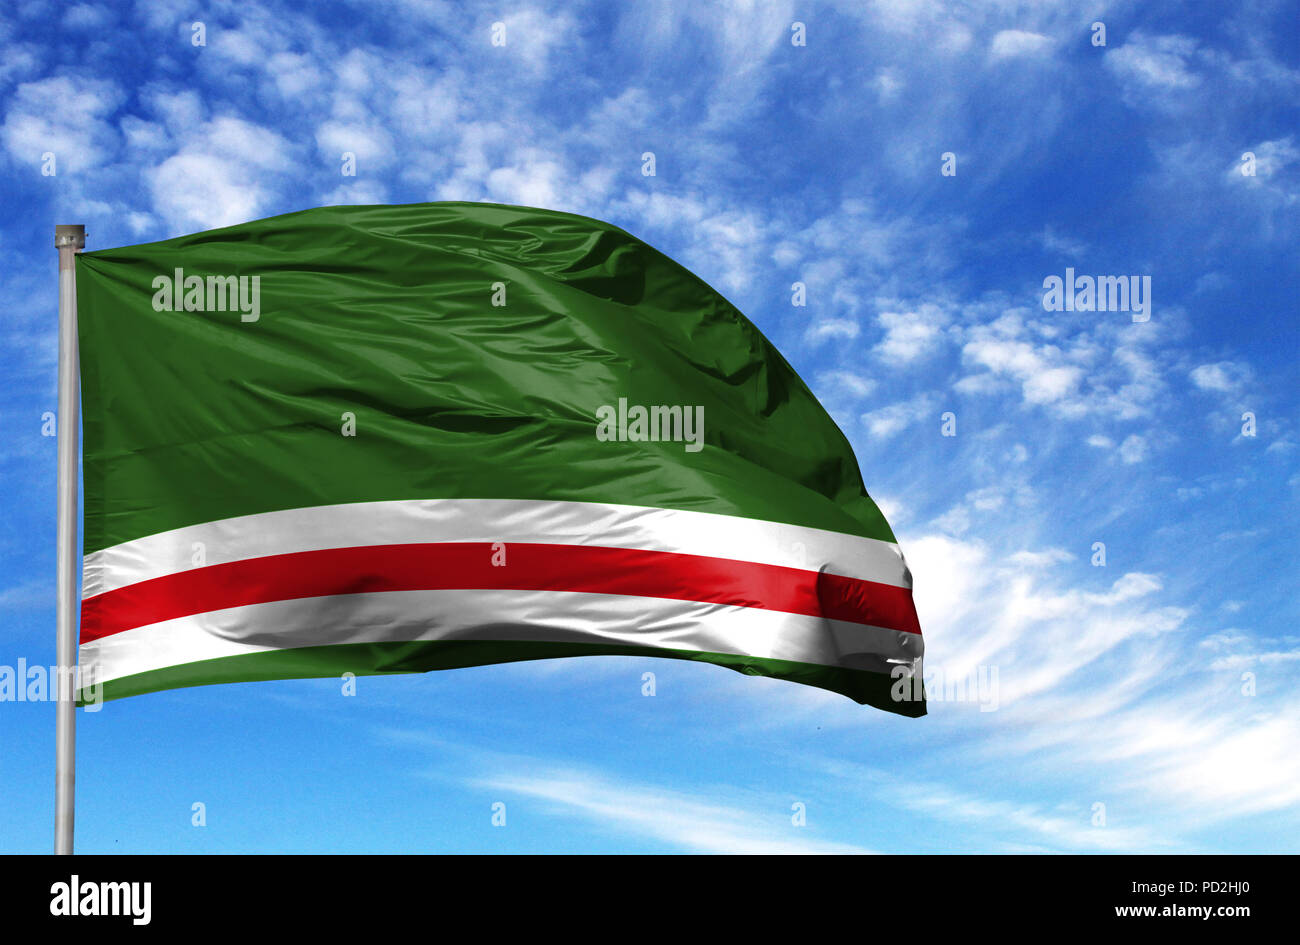 National flag of Chechen Republic of Ichkeria on a flagpole in front of blue sky. - Stock Image